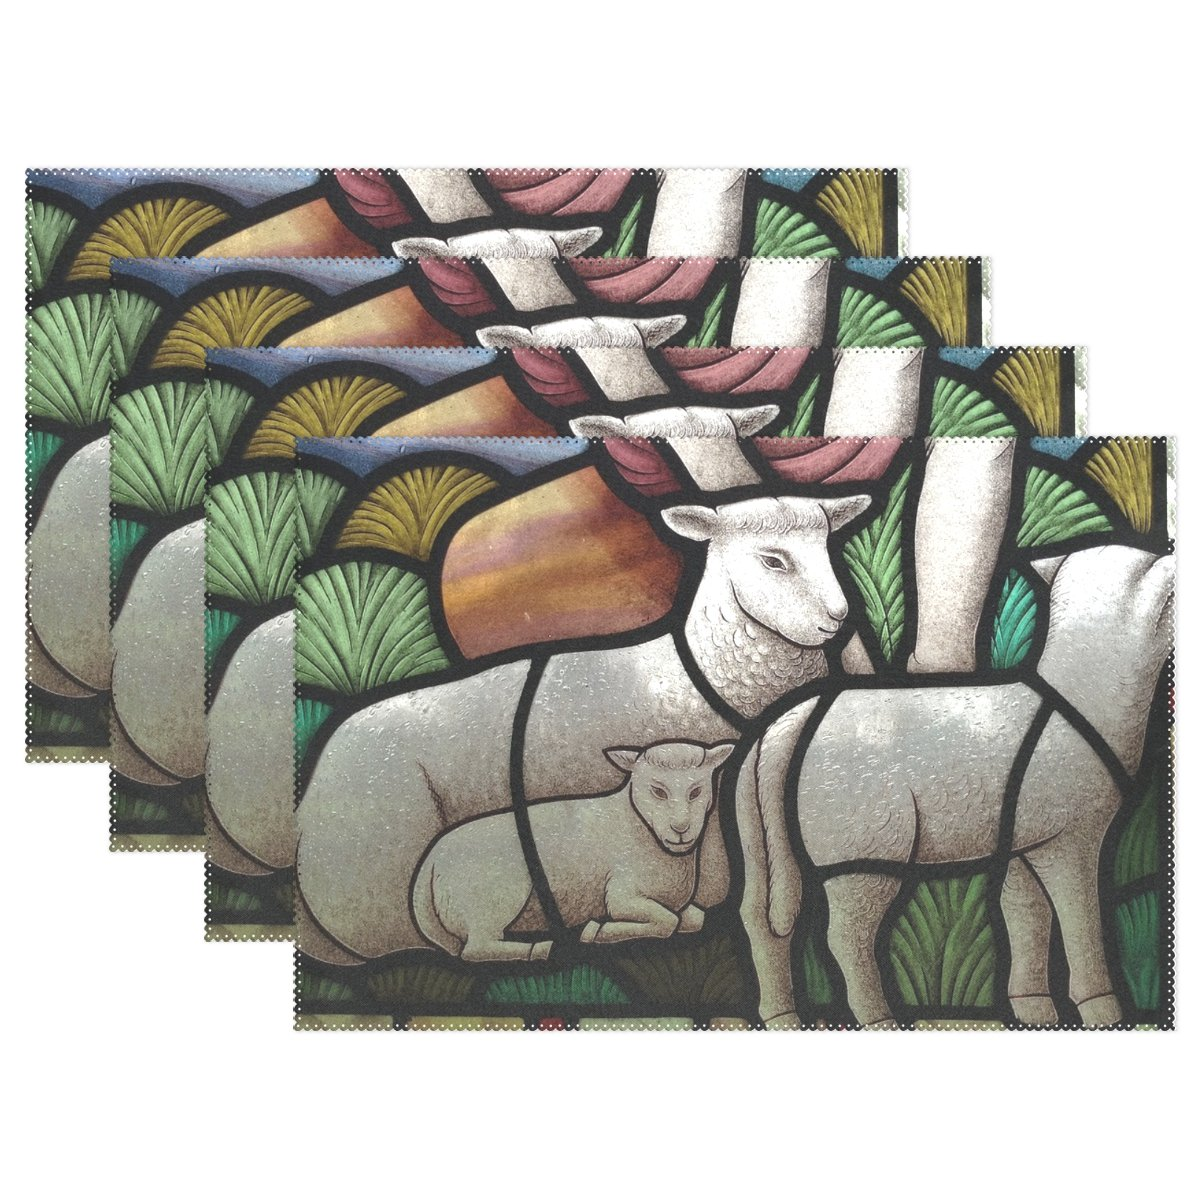 ENEVOTX Stained Glass Lamb Christian Church Window Sheep Placemats Set Of 4 Heat Insulation Stain Resistant For Dining Table Durable Non-slip Kitchen Table Place Mats